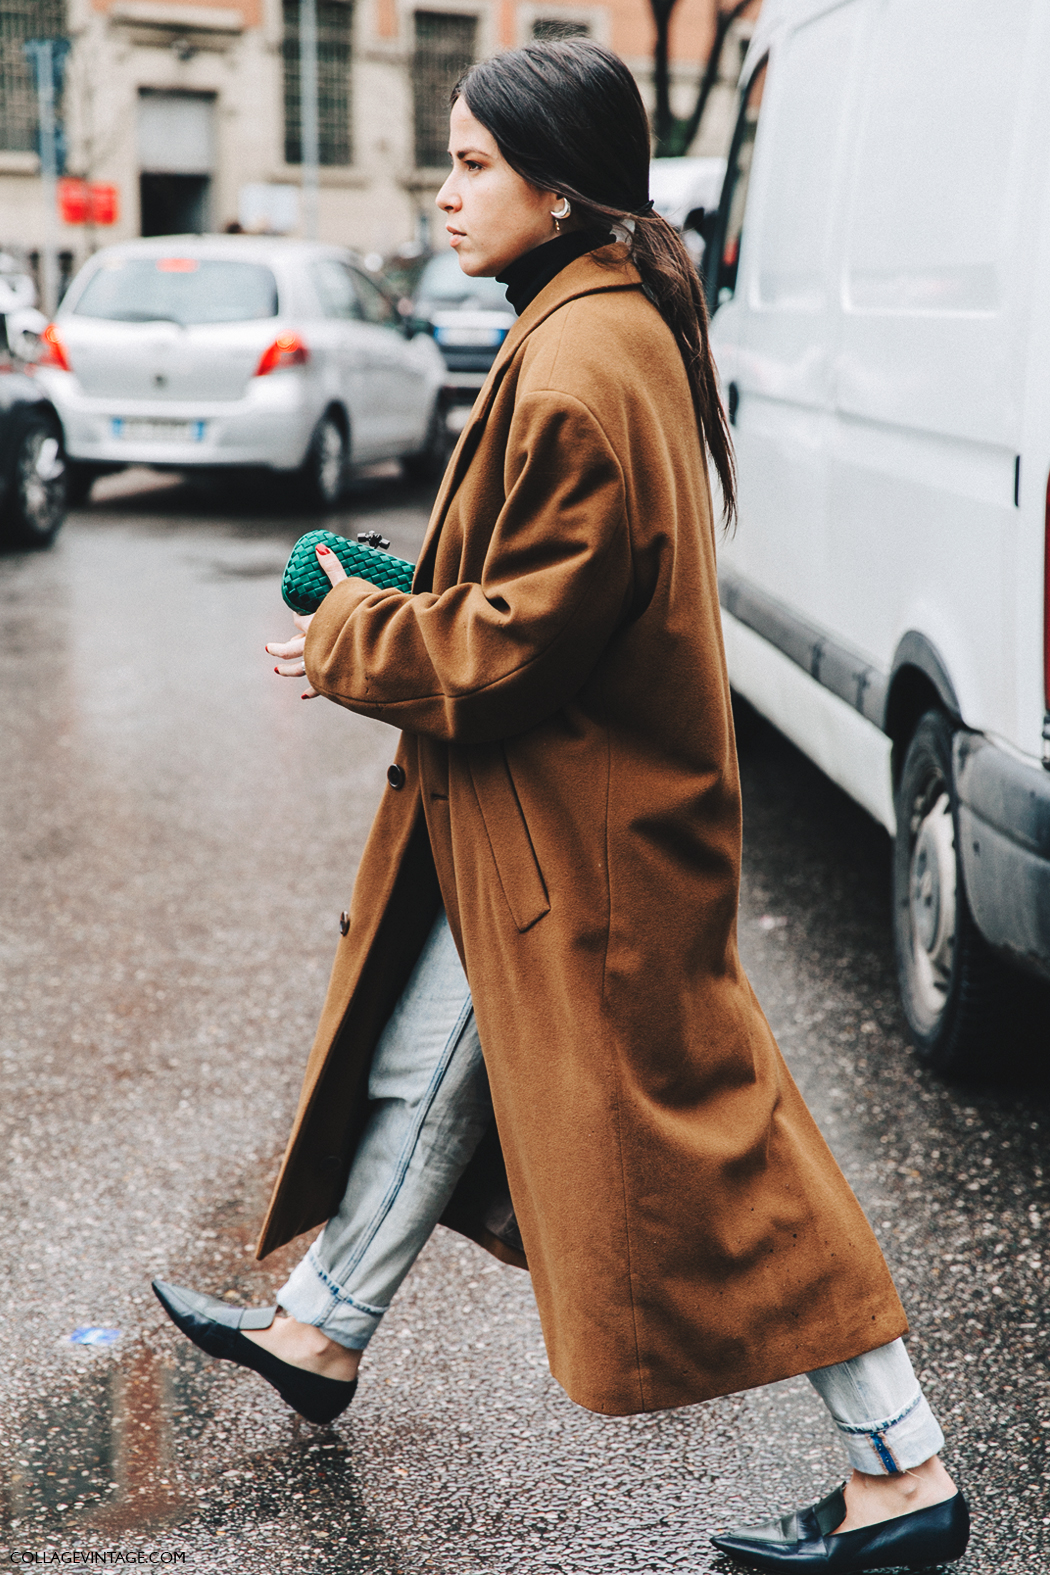 Milan_Fashion_Week_Fall_16-MFW-Street_Style-Collage_Vintage-Long_Camel_Coat-Jeans-Slippers-